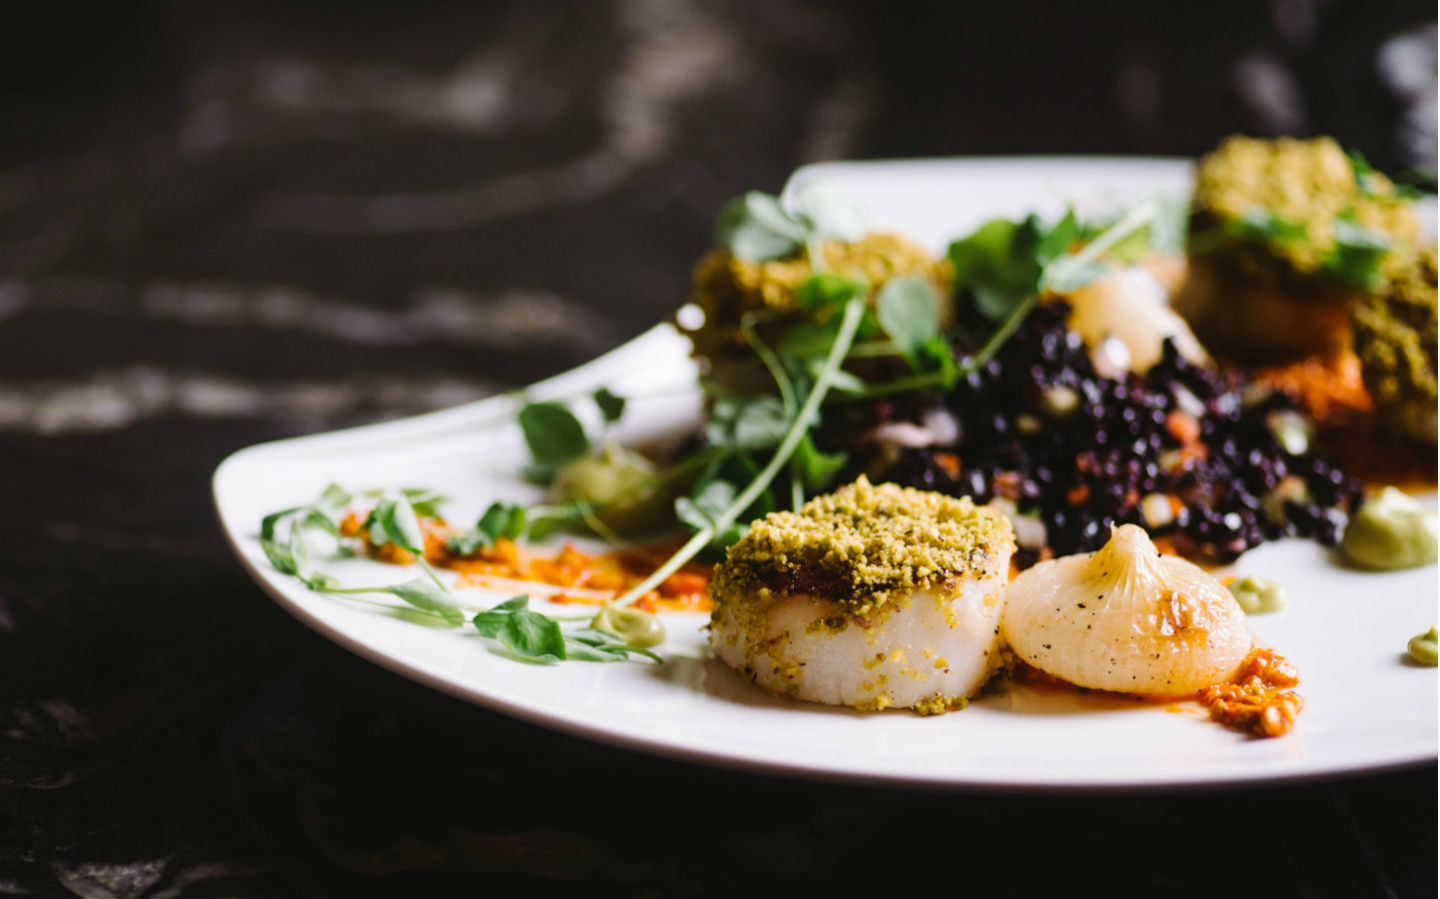 Pistachio Crusted Scallops